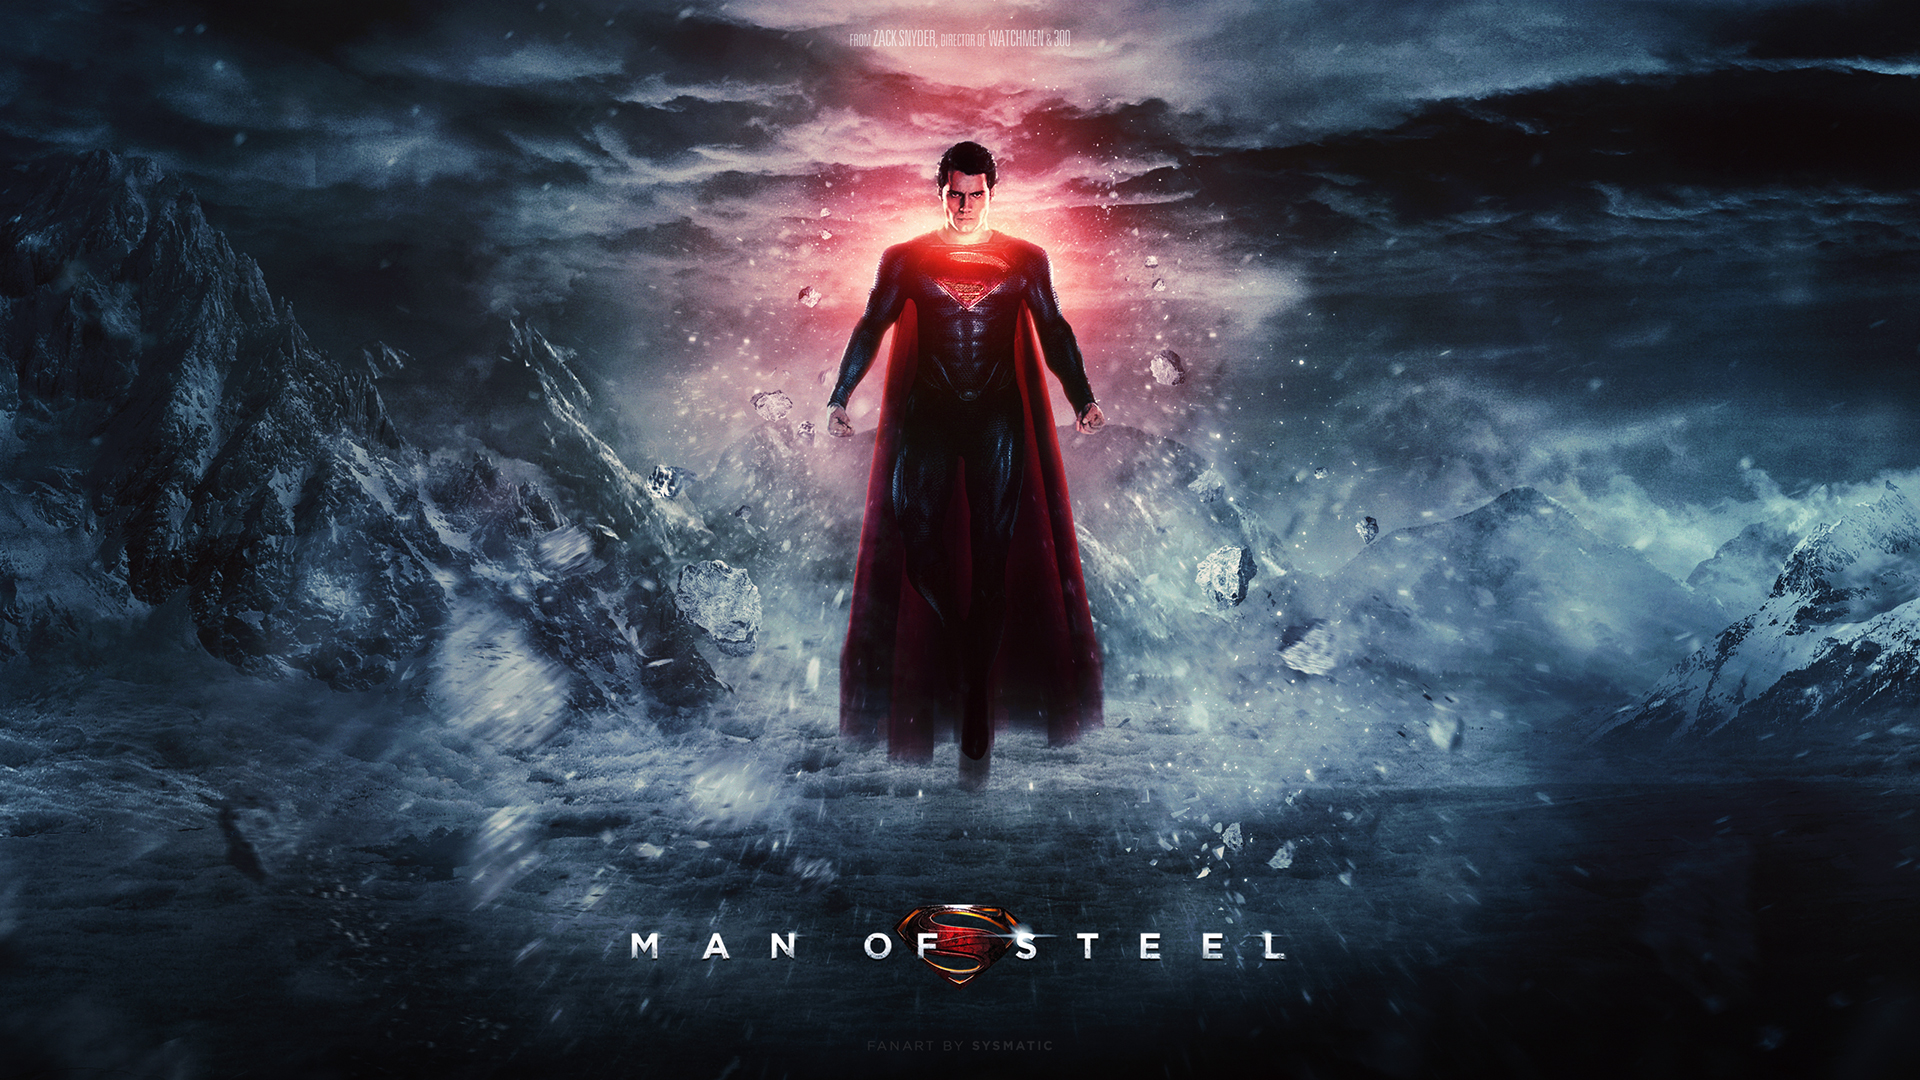 ¿Tendrá 'Man of Steel' una segunda entrega?